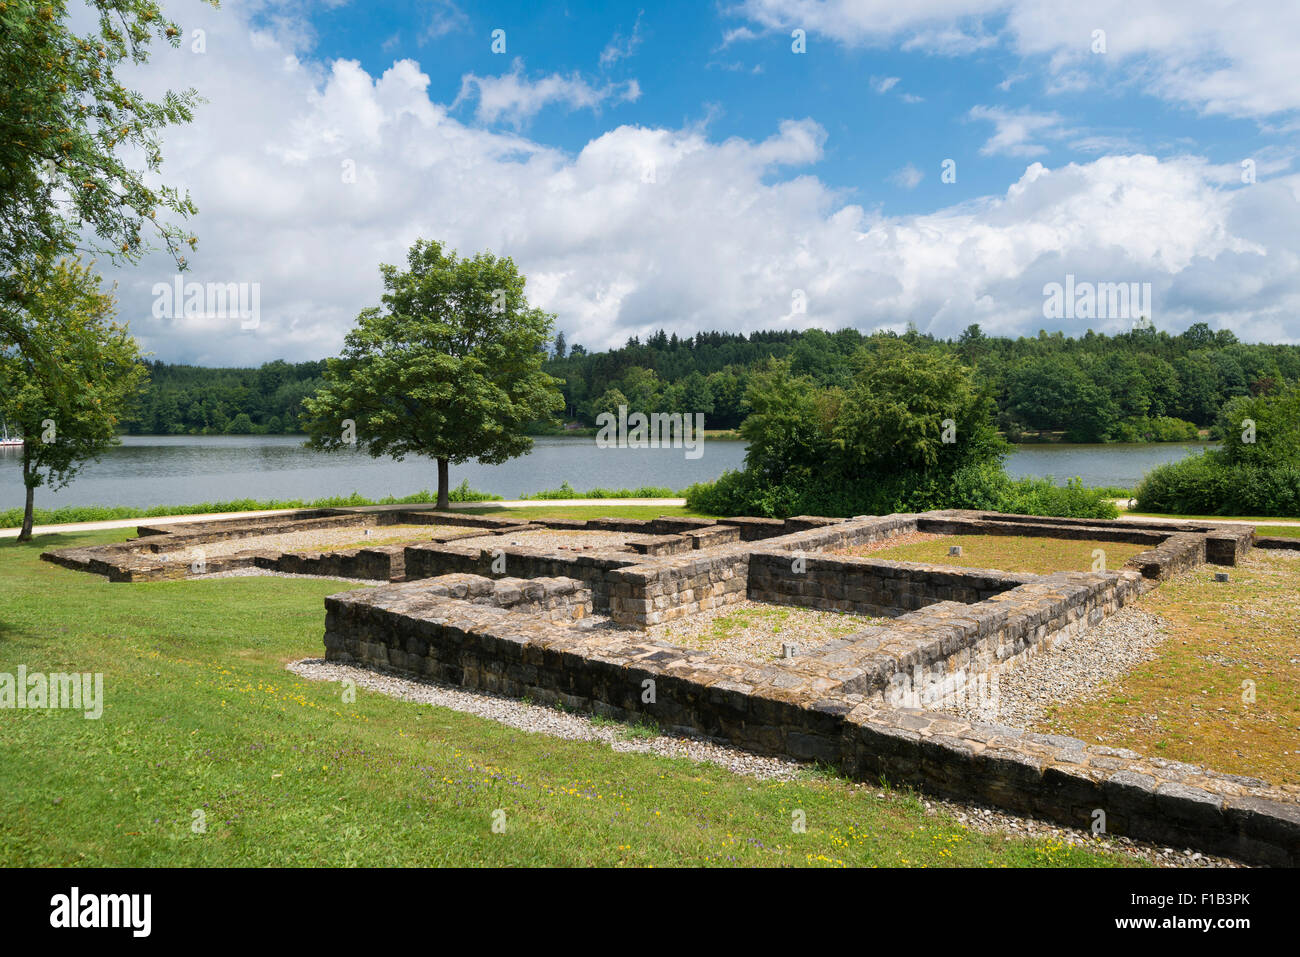 Roman fort bath, open-air museum at the Limes, Rainau, Baden-Württemberg, Germany - Stock Image